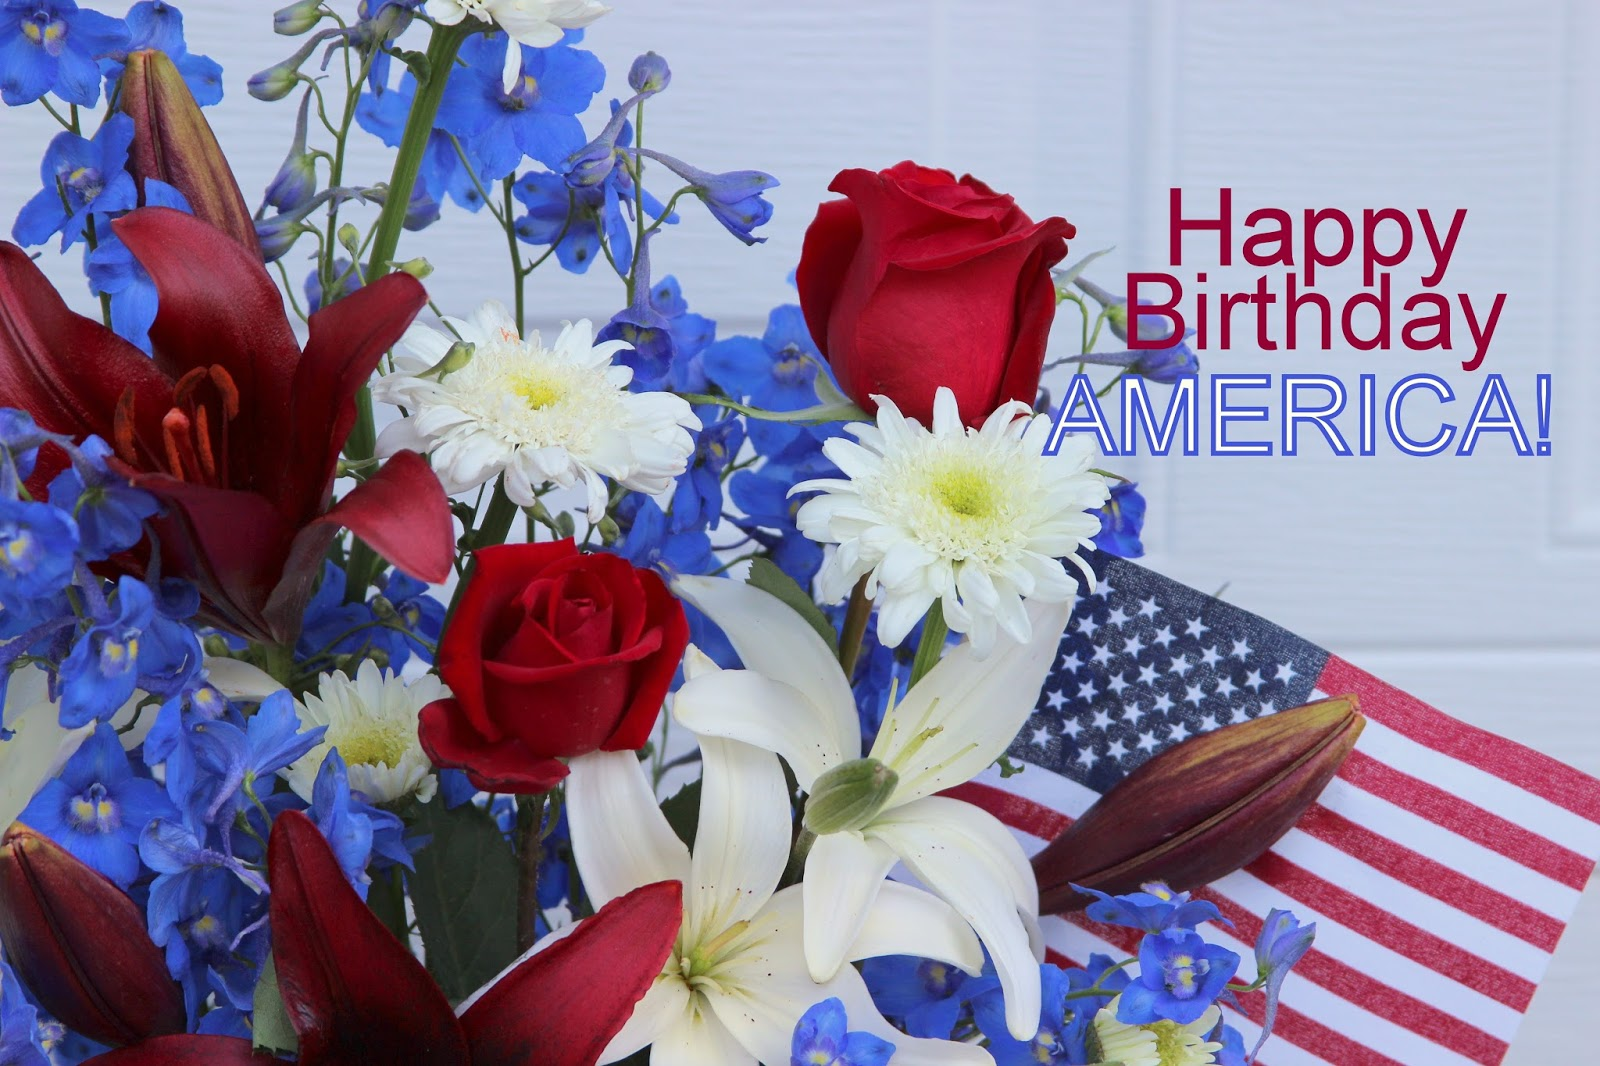 Red White And Blue Arrangements Happy Birthday America Sowing